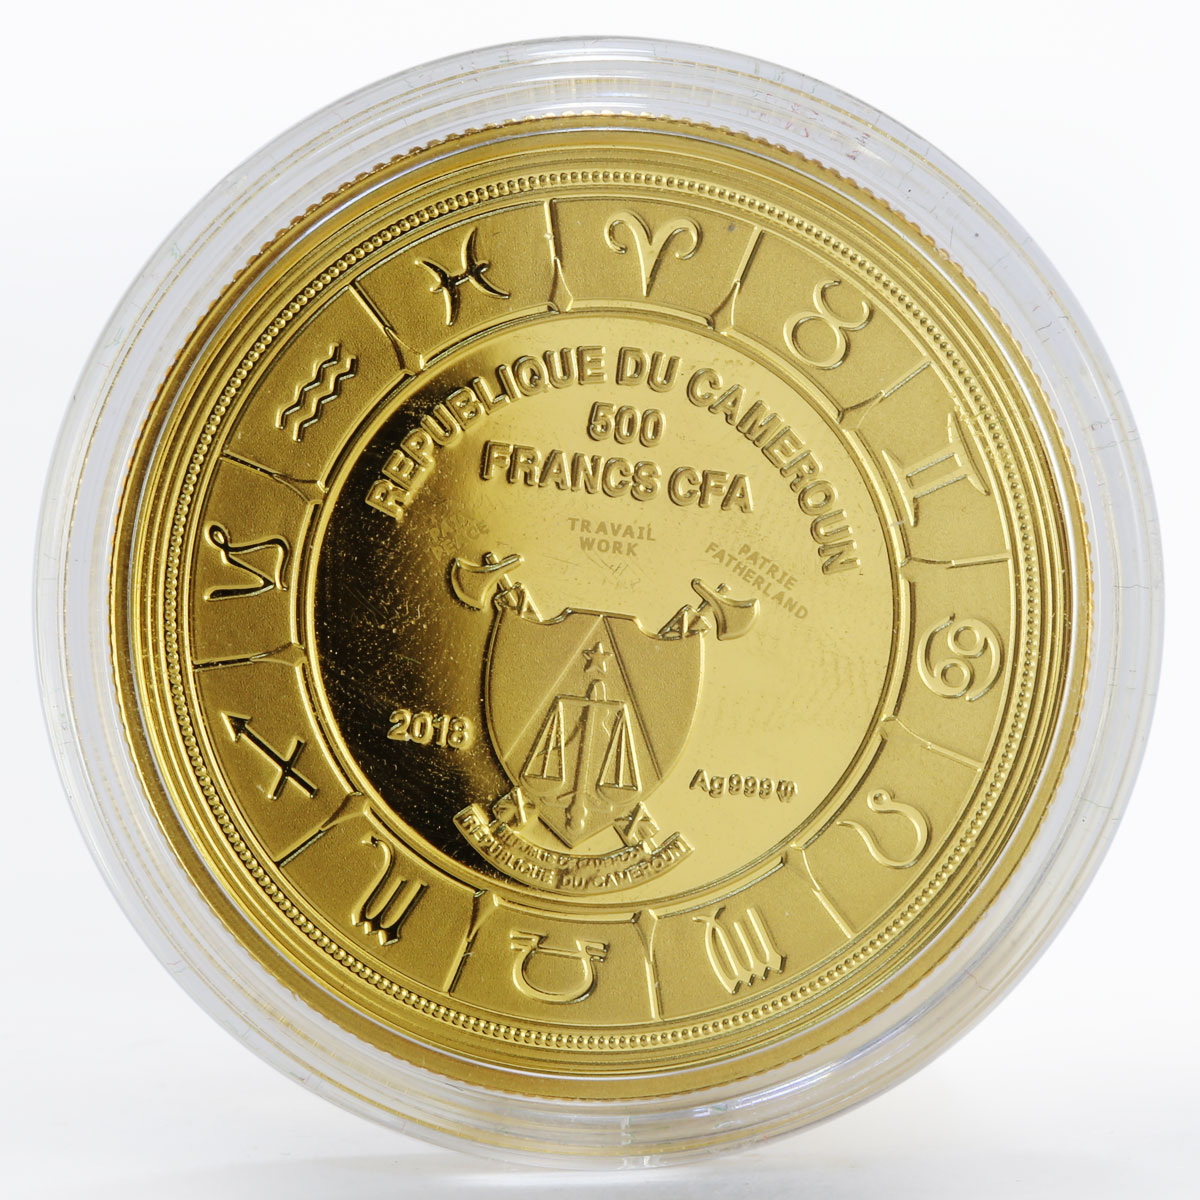 Cameroon 500 francs Zodiac Signs Cancer colored gilded proof silver coin 2018